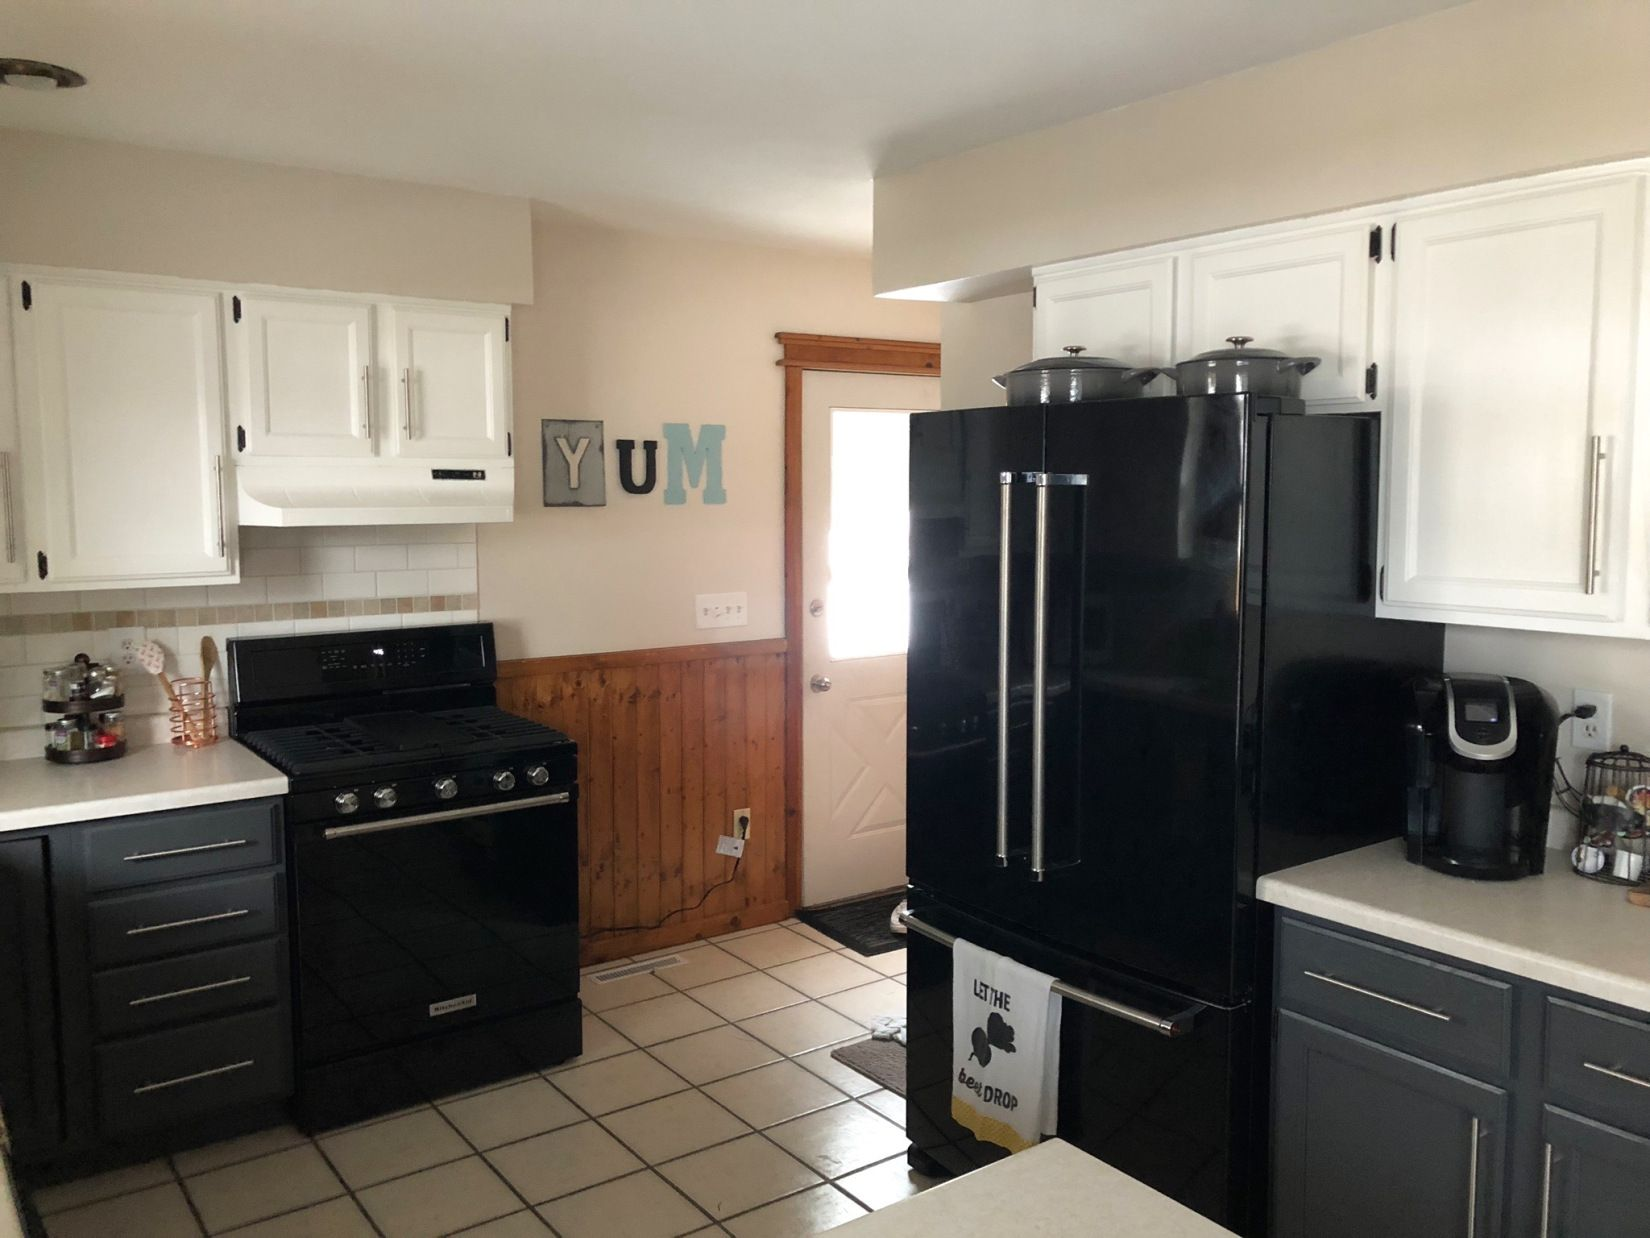 Before And After Diy Kitchen Remodel Modern Painted Cabinets In A Two Tone Finish Simple Kitchen Remodel Cheap Kitchen Remodel Inexpensive Kitchen Remodel